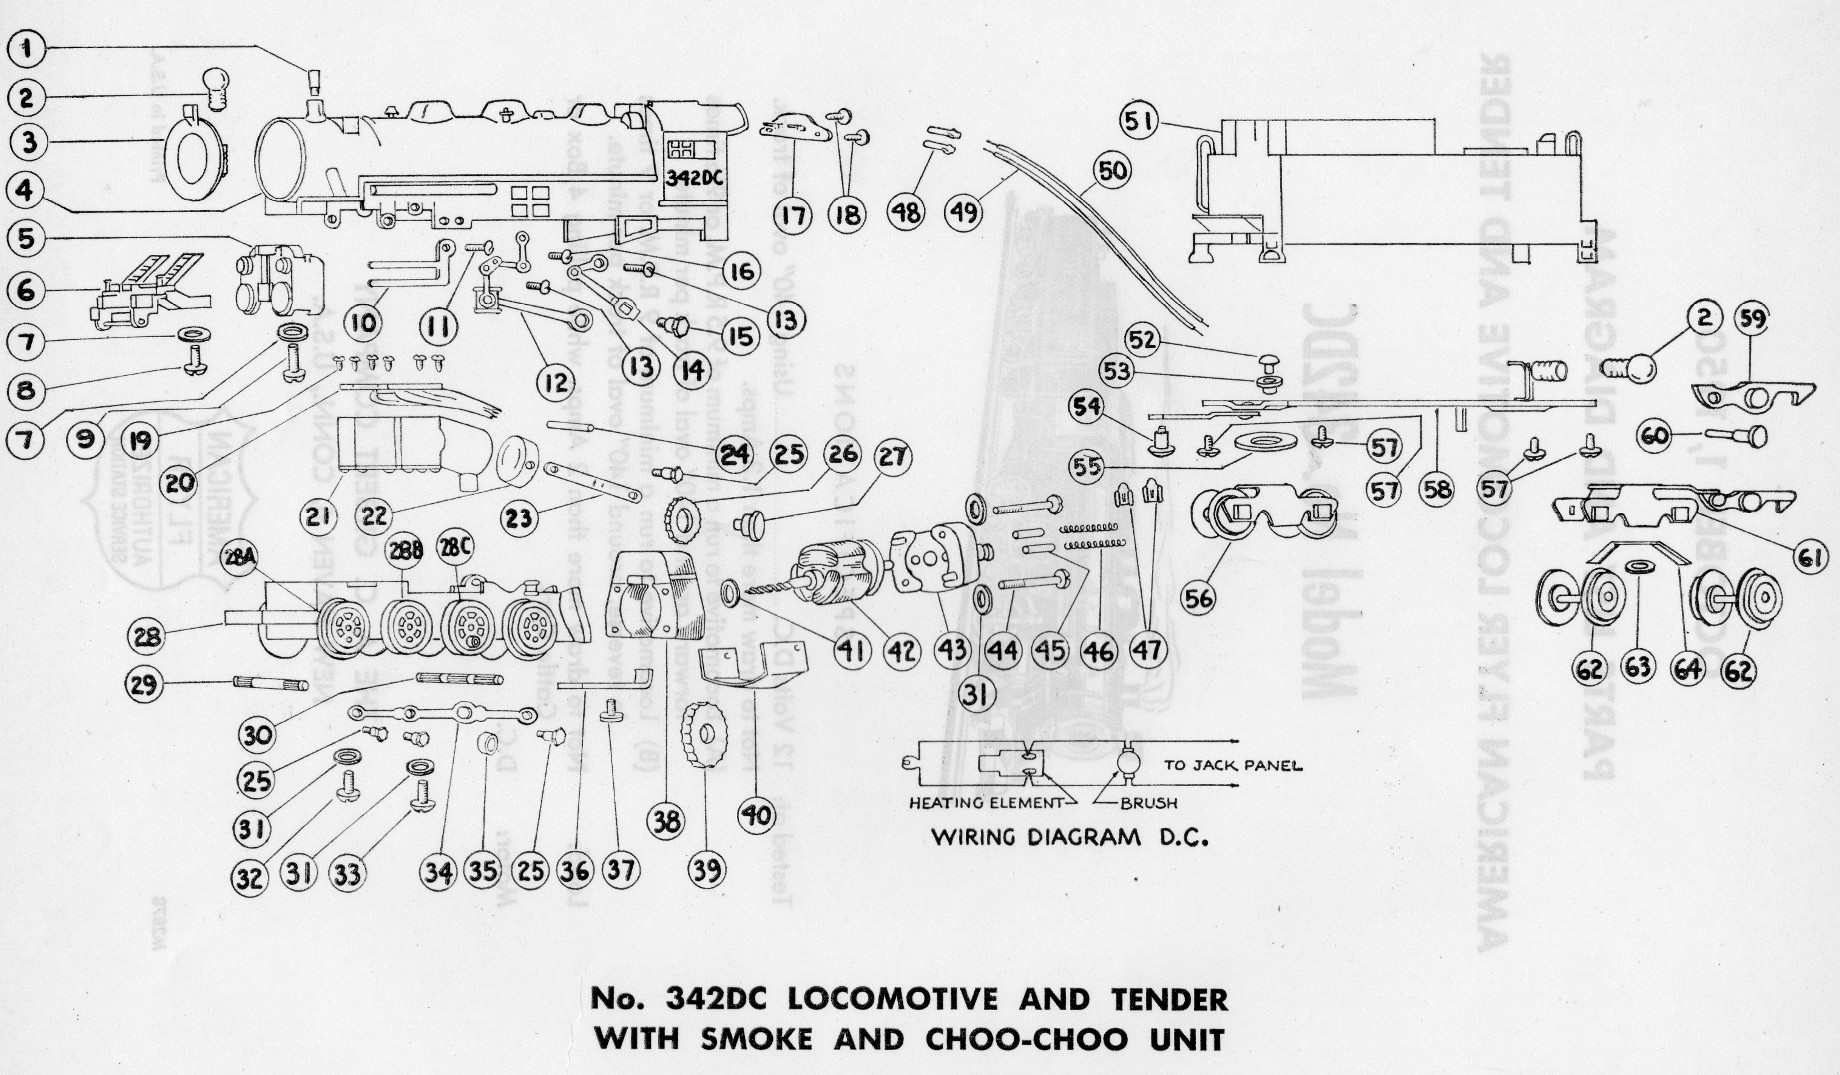 American Flyer Locomotive 342dc Parts List Amp Diagram